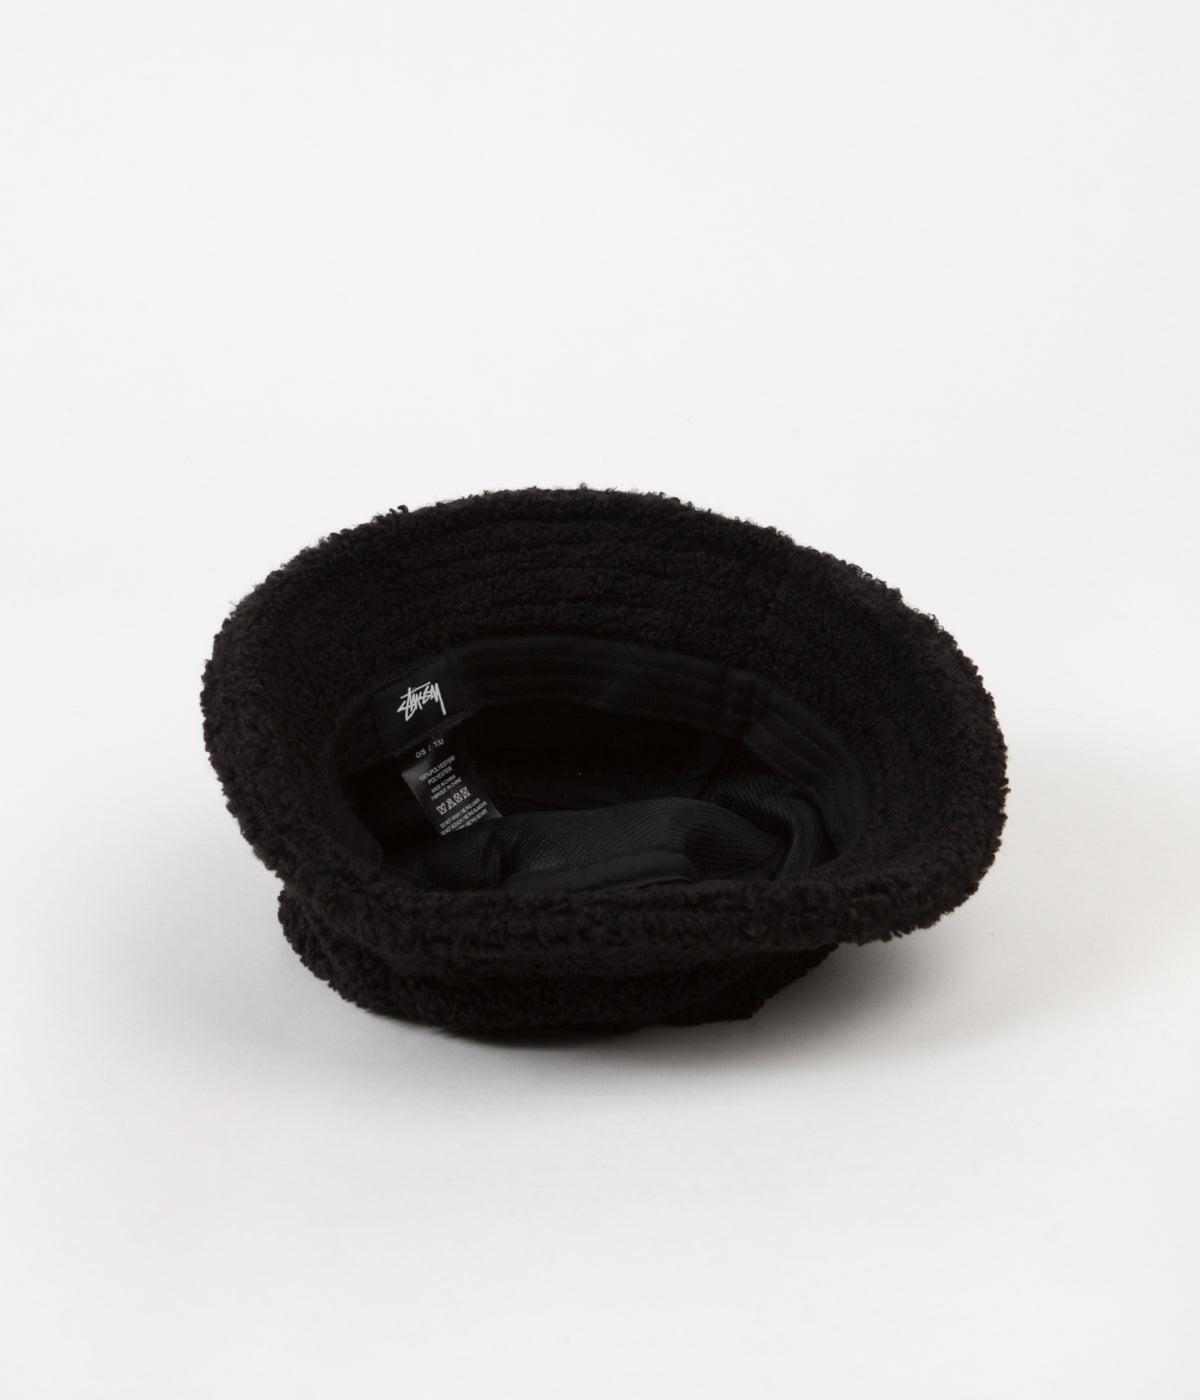 7aeabed8d73 Stussy Sherpa Fleece Bucket Hat - Black ...